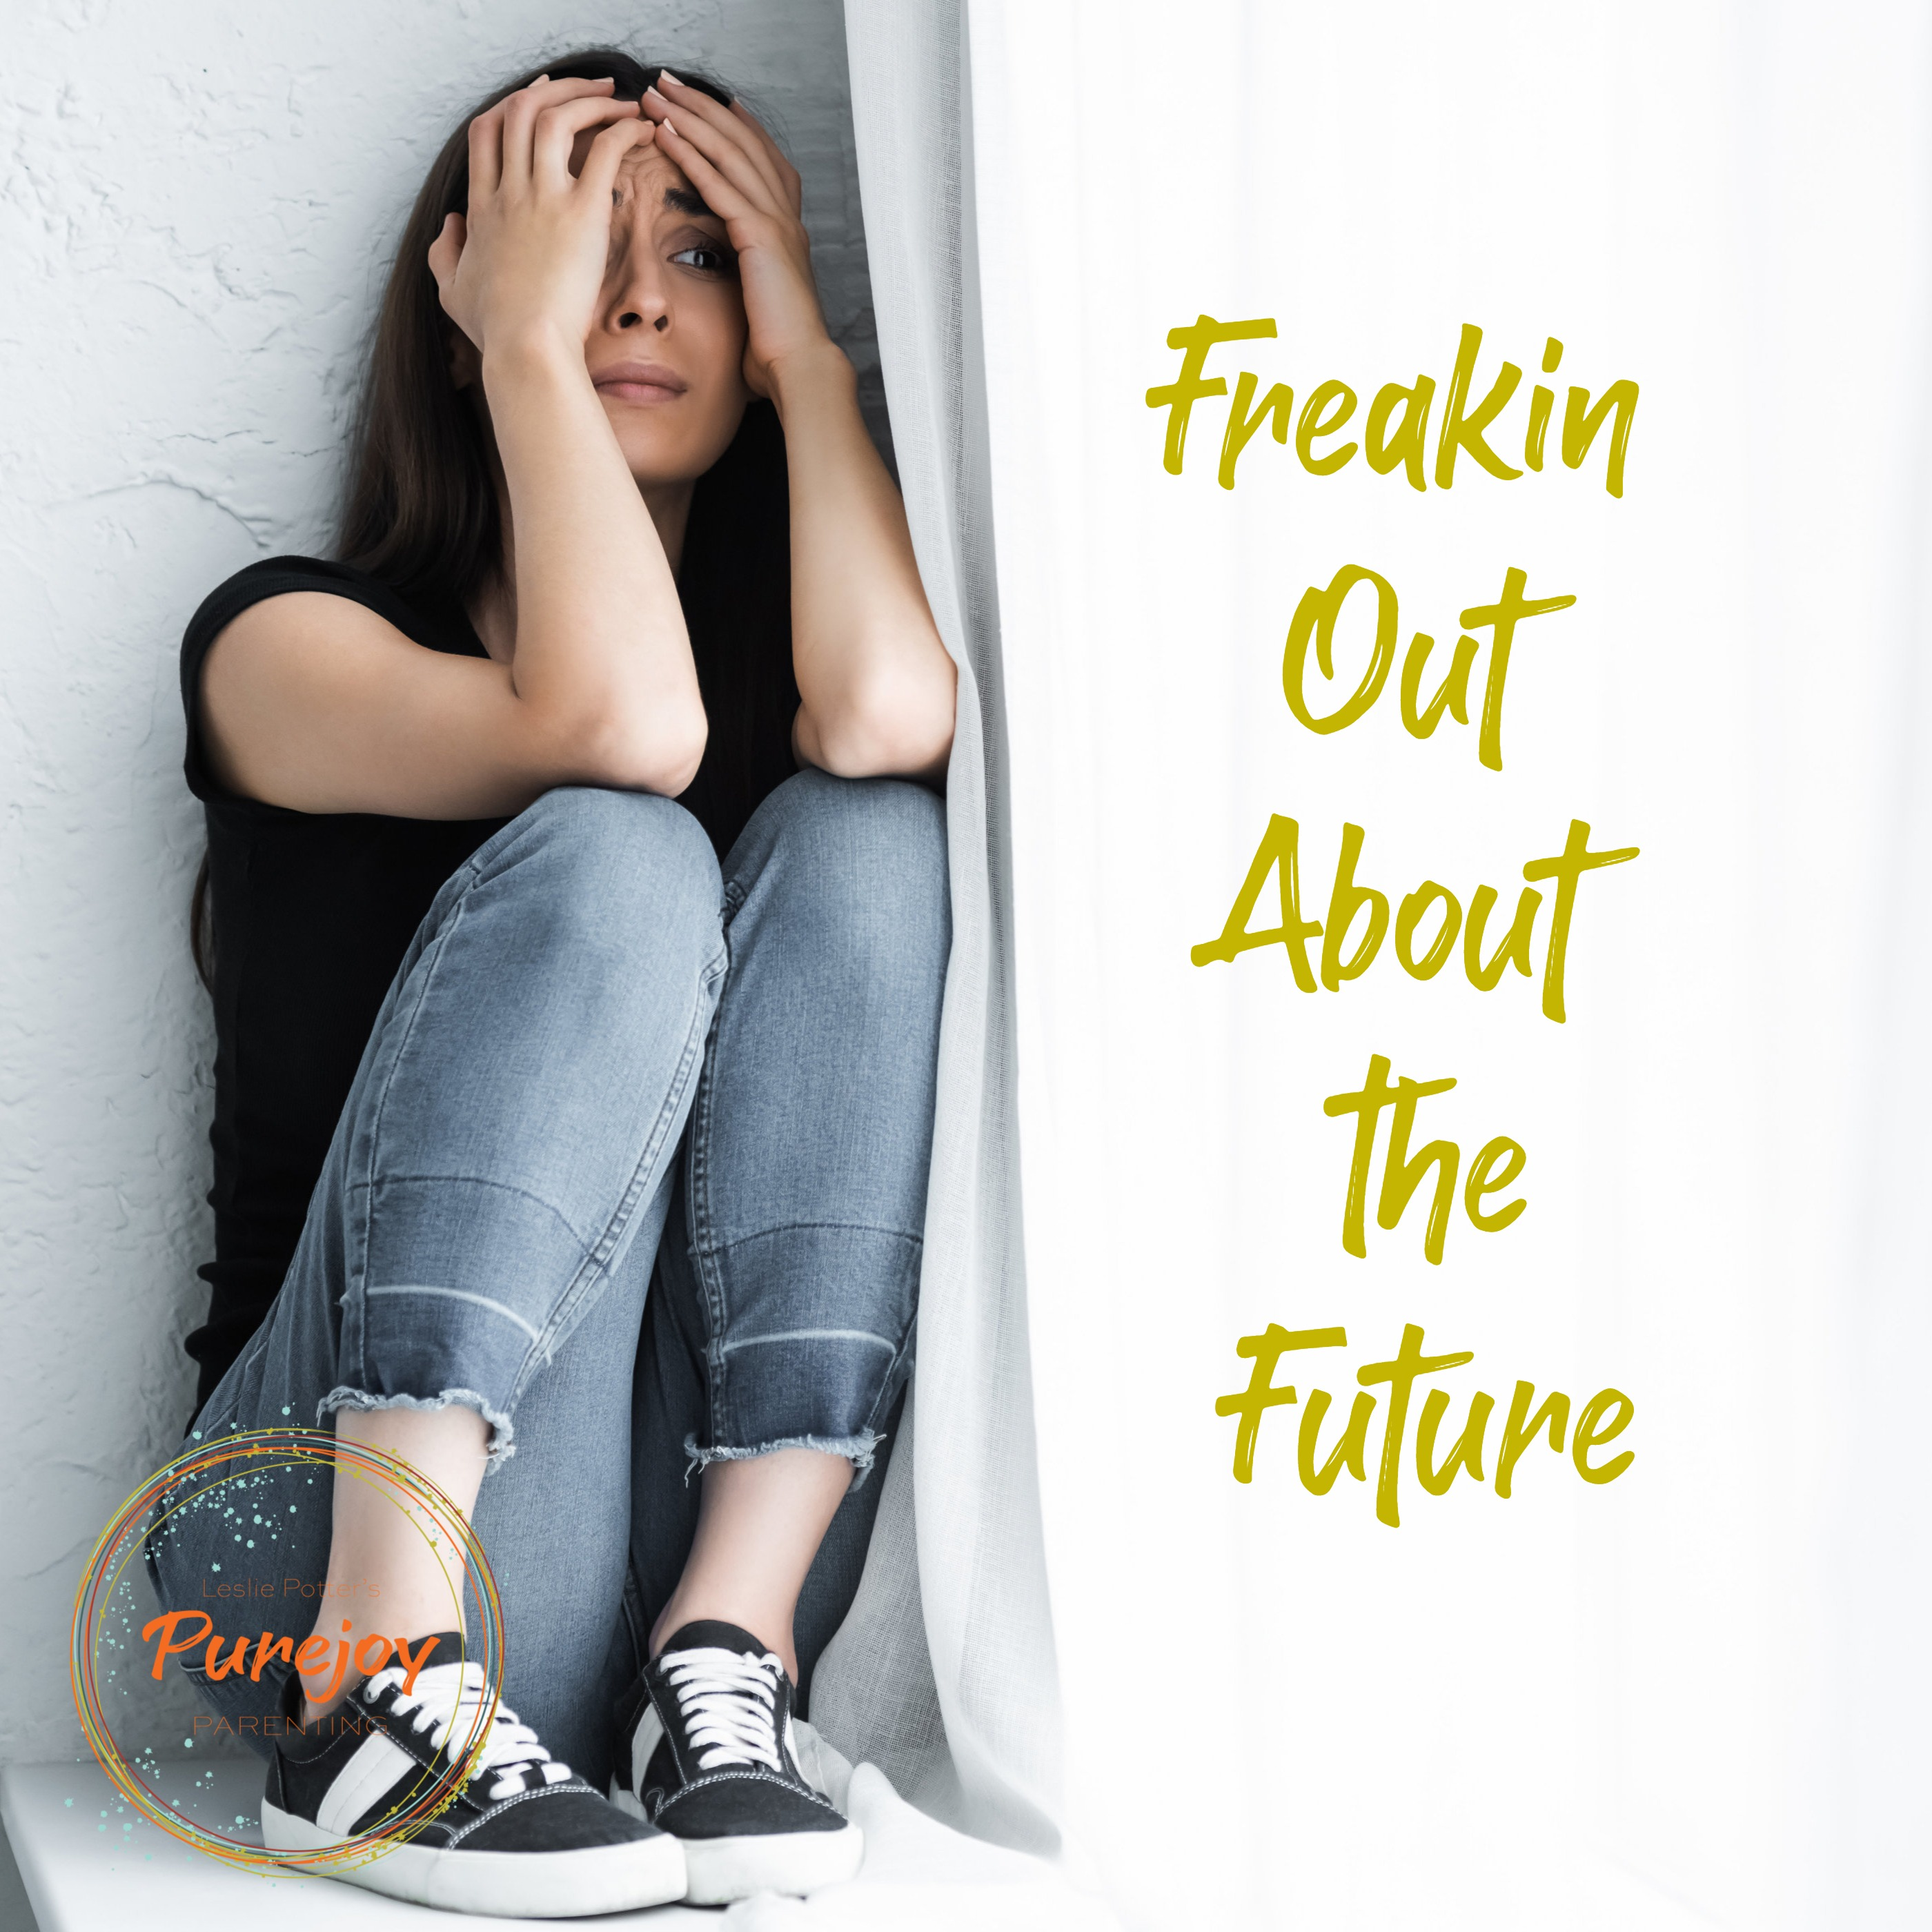 Purejoy Parenting Popup Call: Freakin Out About the Future